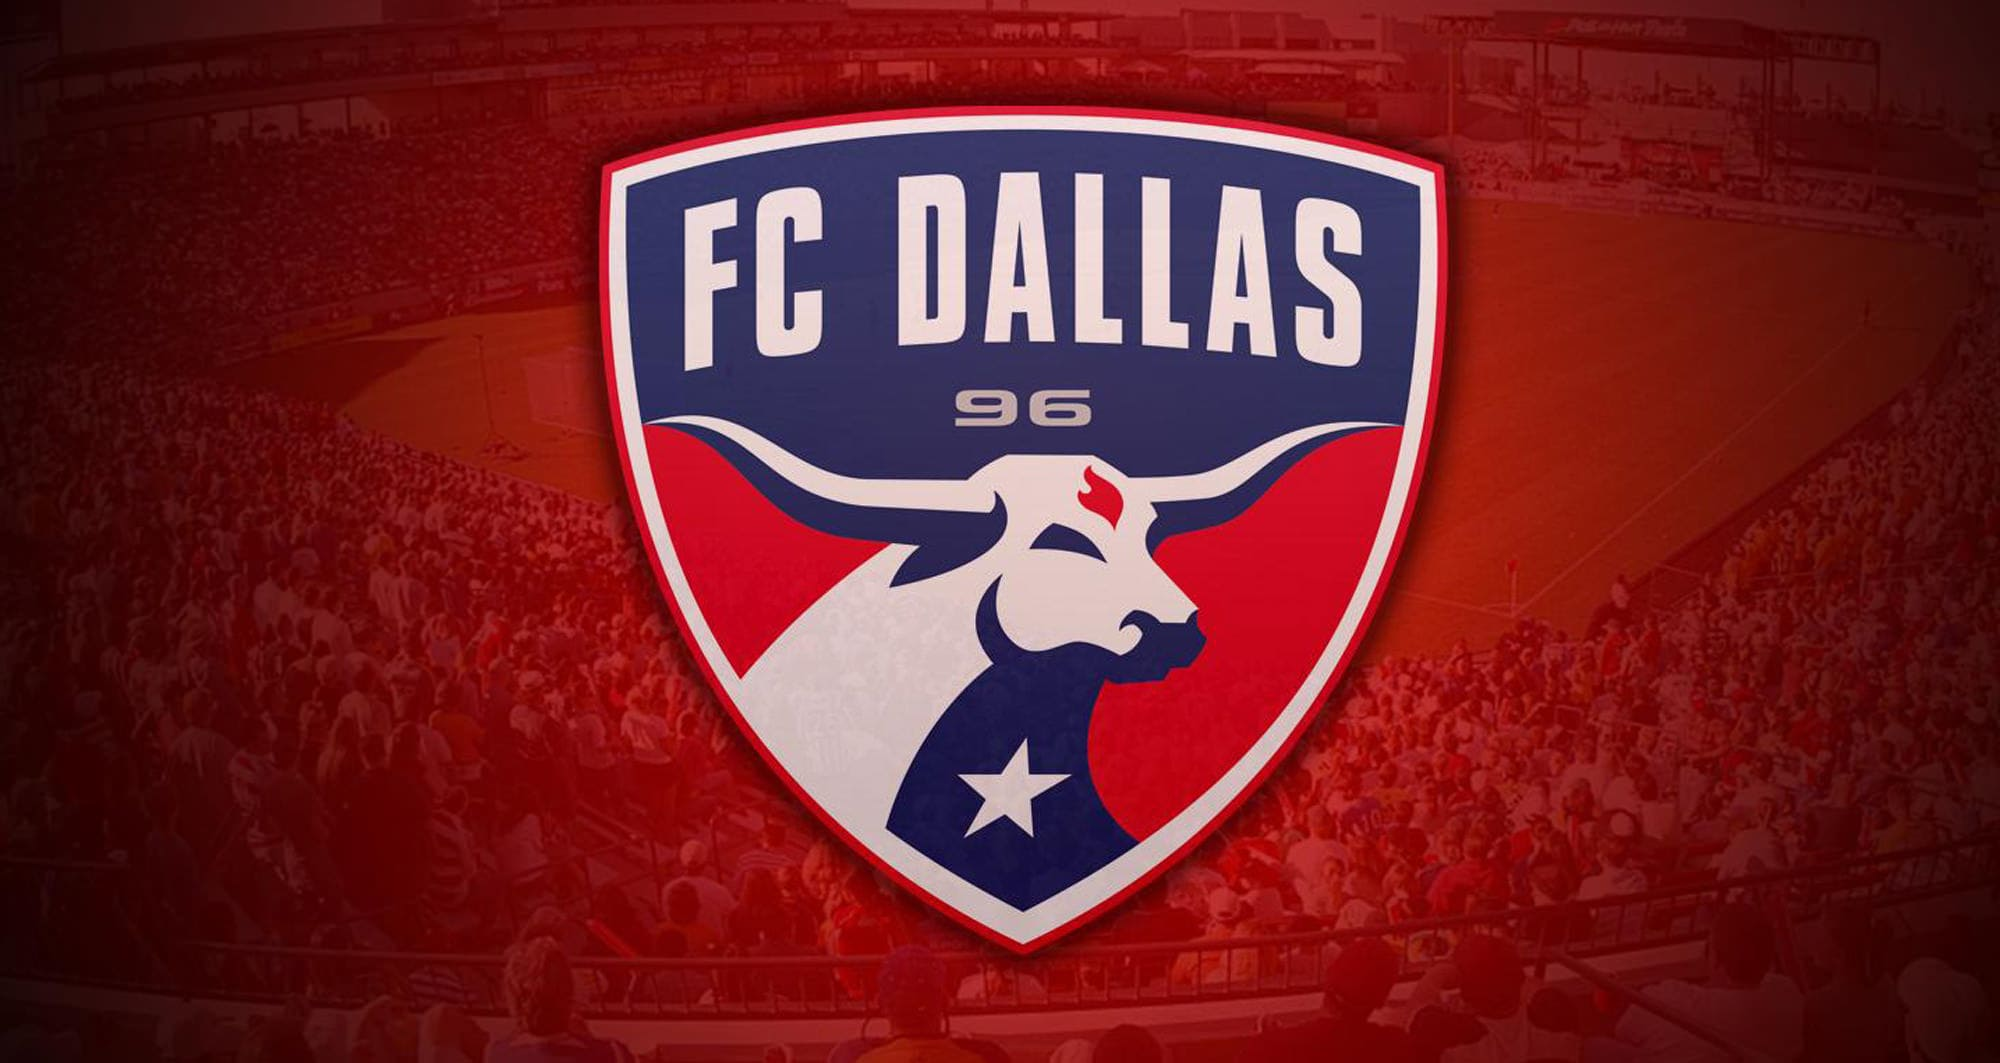 FC Dallas July 4th Special- See the largest firework show in North Texas with FC Dallas!